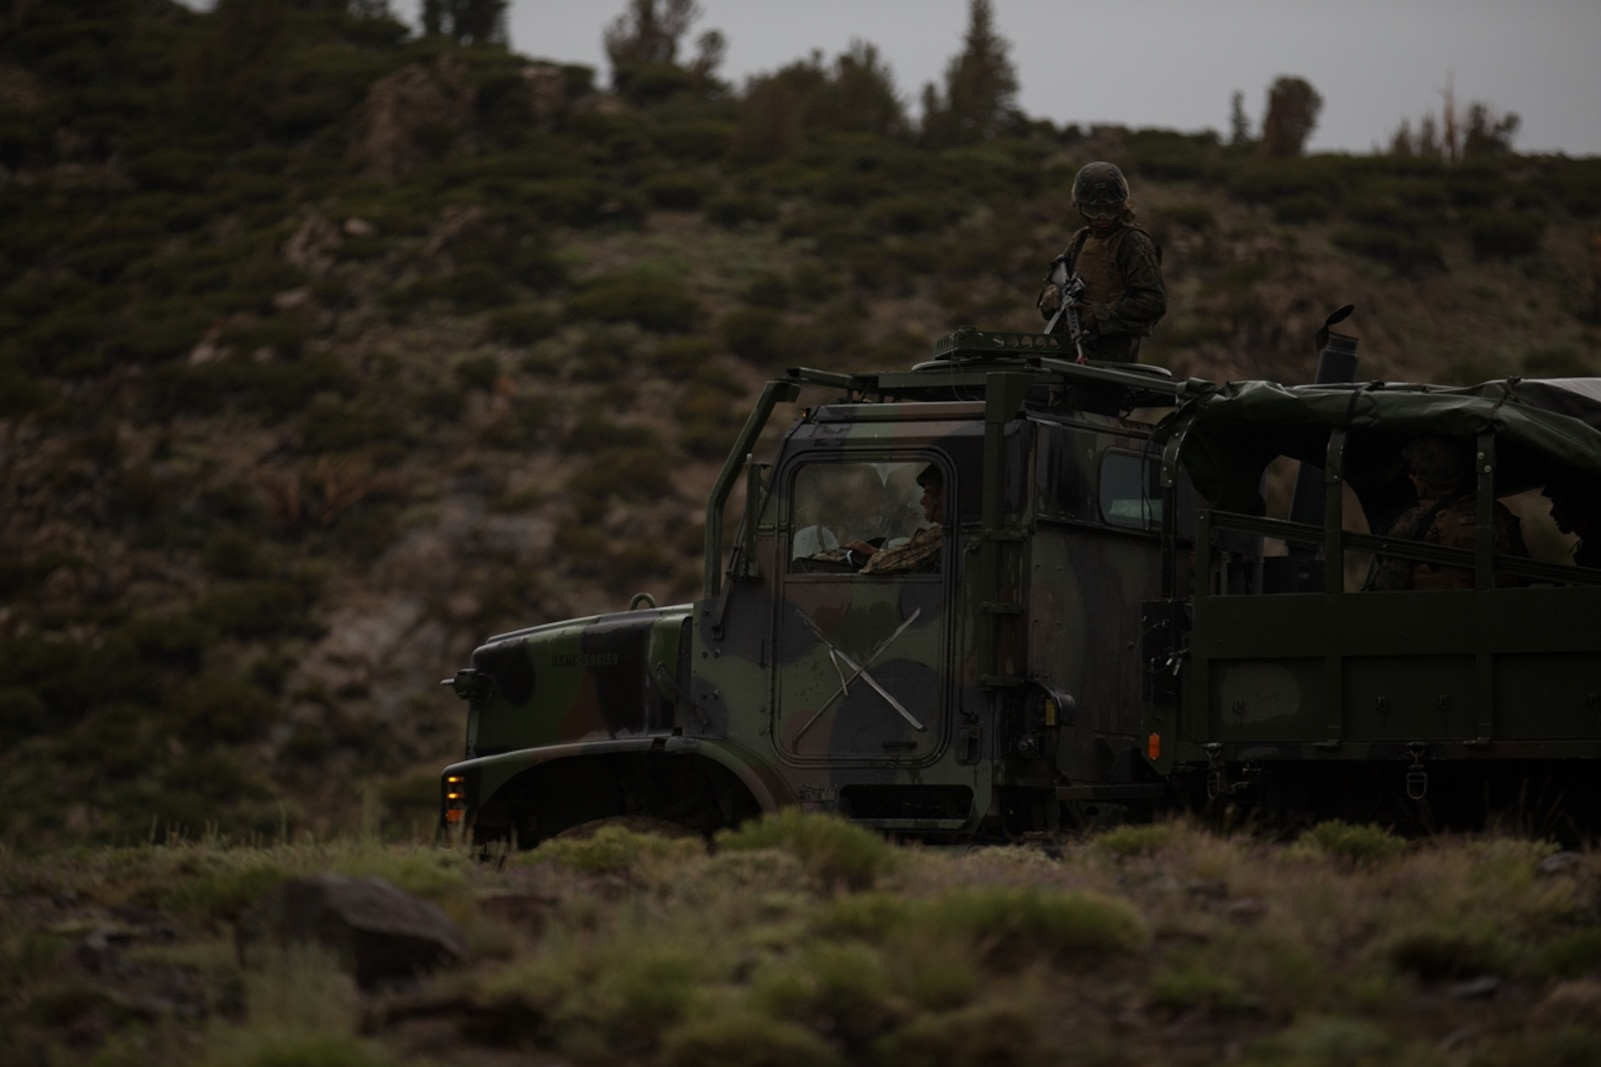 U.S. Marines and Sailors with Combat Logistics Battalion 5, Combat Logistics Regiment 1, 1st Marine Logistics Group, participate in a convoy during Mountain War Training 4-17 at Mountain Warfare Training Center, August 5, 2017. Most 7-ton vehicles have a Marine Rifleman positioned on top of the roof to act as an observer. (U.S. Marine Corps photo by Lance Cpl. Timothy Shoemaker)